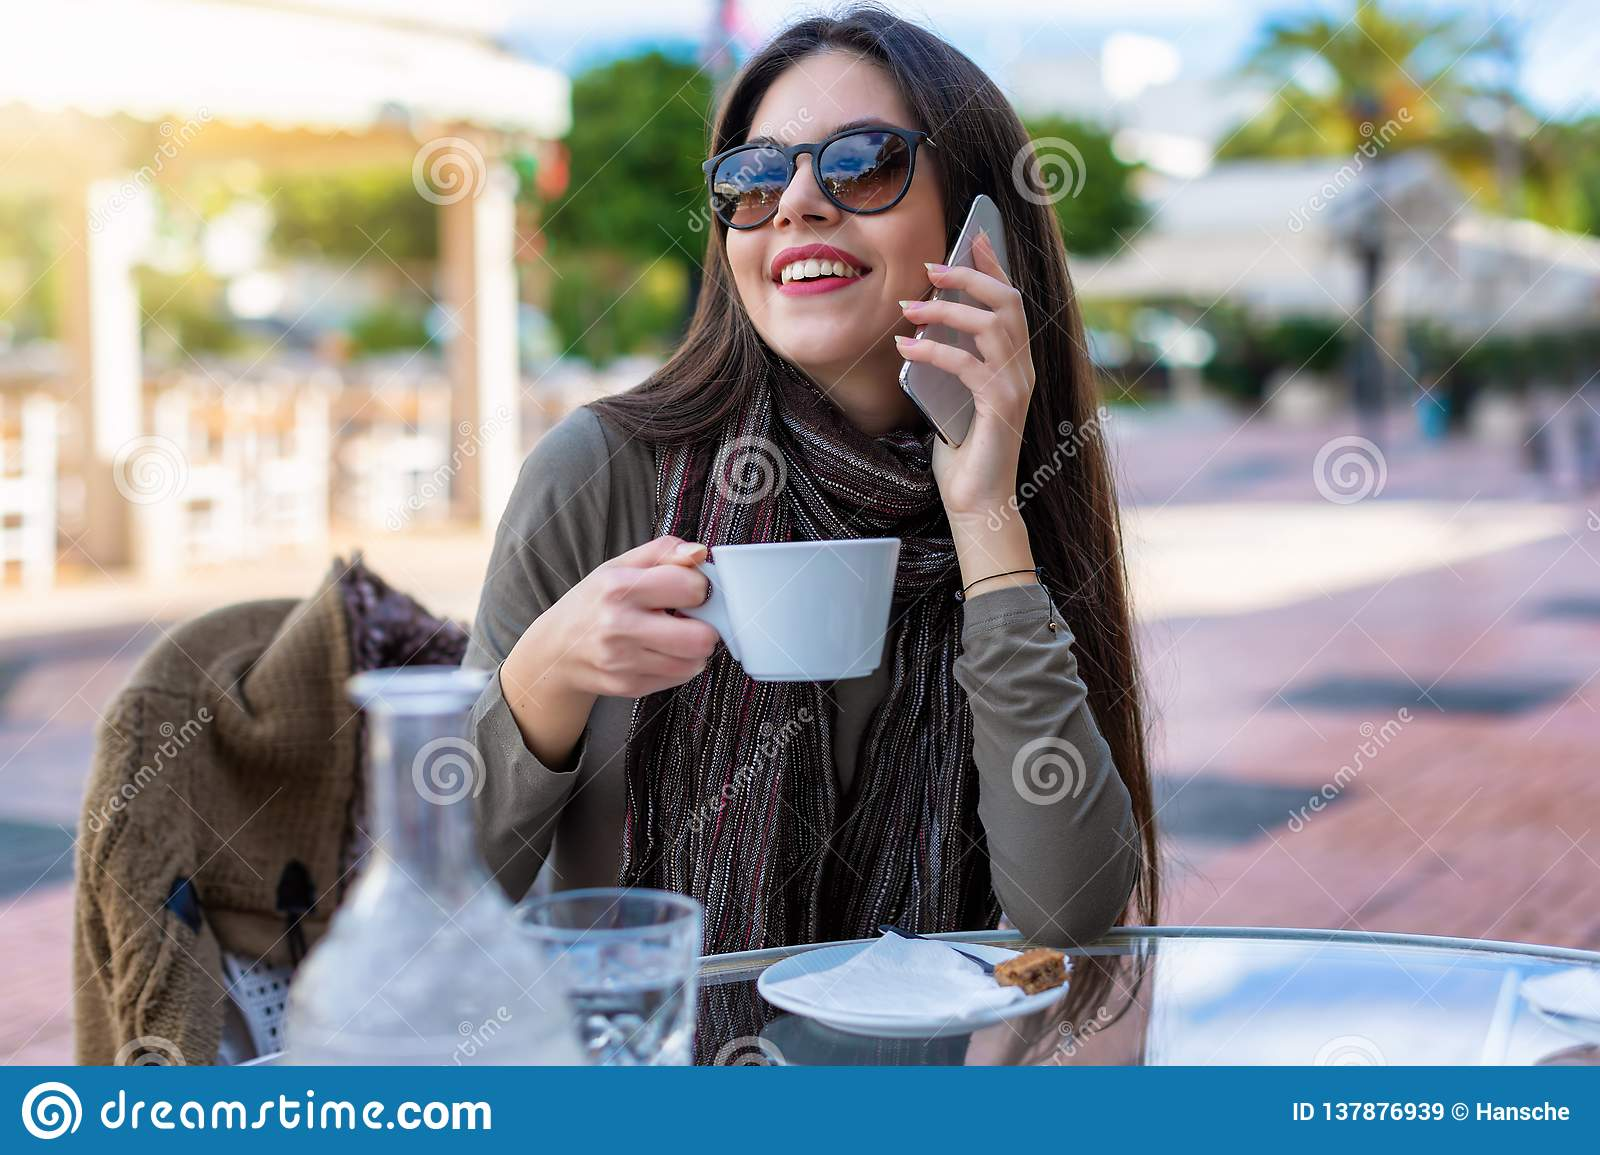 Girl sits outdoors in a cafe and talks to her mobile phone